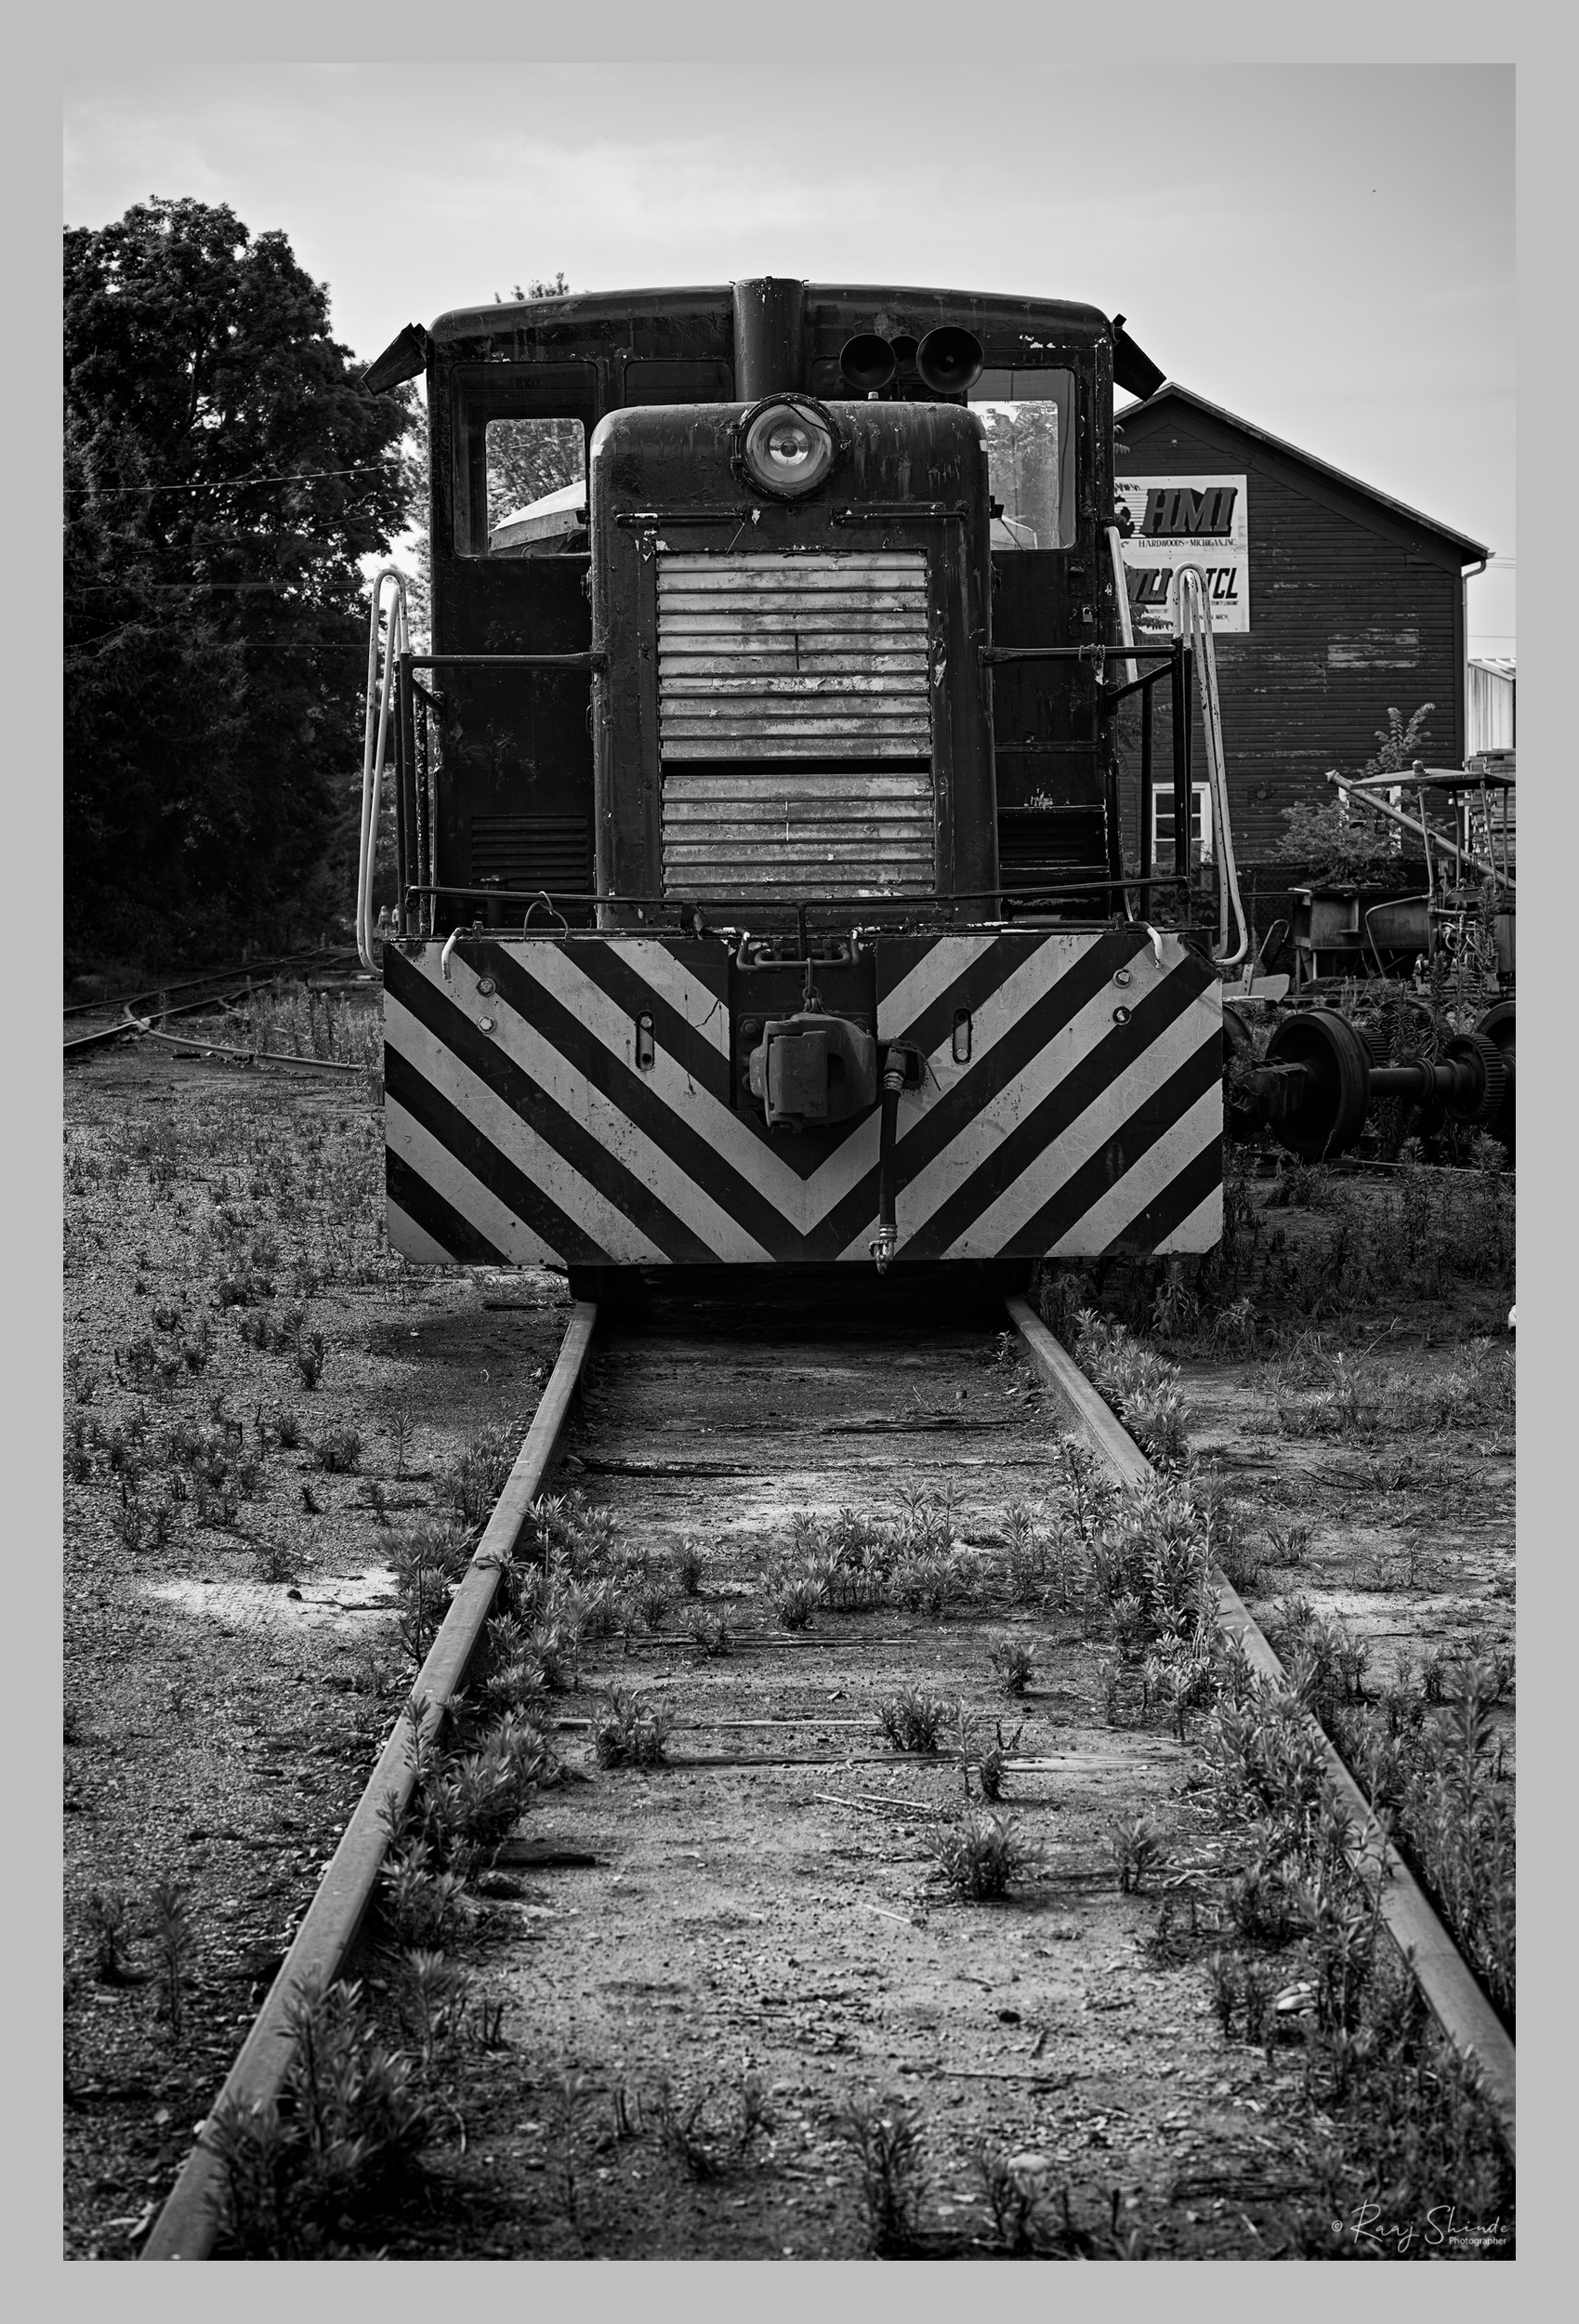 Clinton MI Old Trains 20200619 0260 1 copy